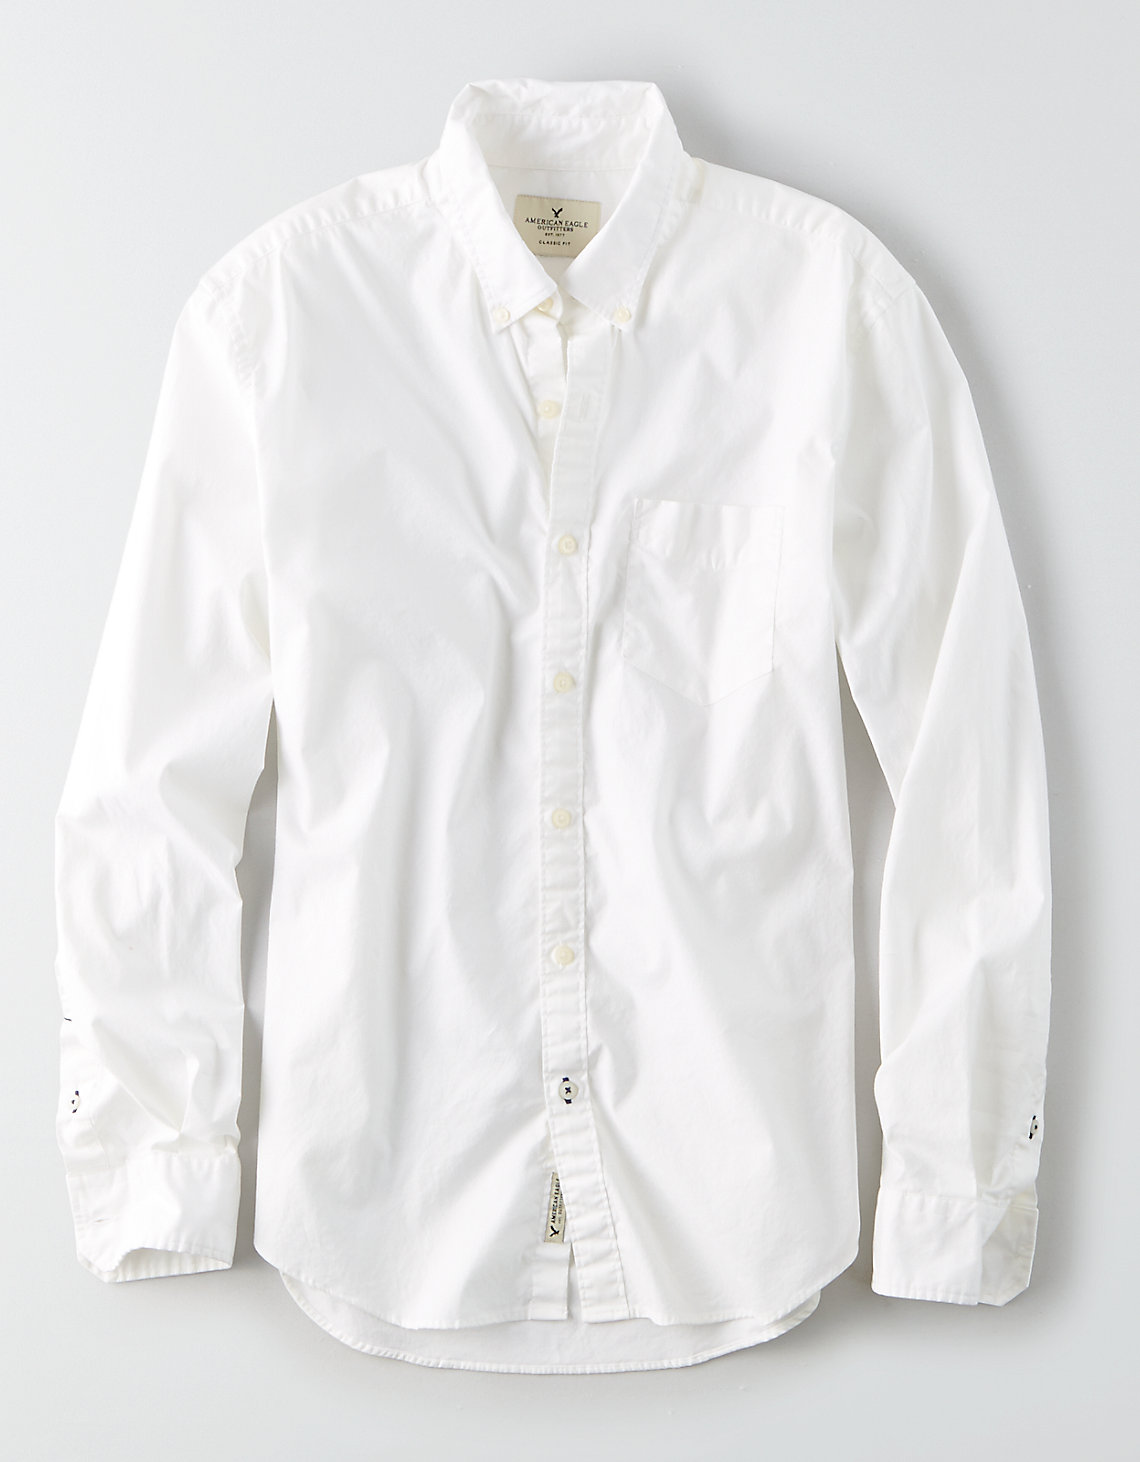 https://www.ae.com/men-aeo-solid-oxford-button-down-shirt-white/web/s-prod/5153_9375_100?cm=sUS-cUSD&catId=cat6000003